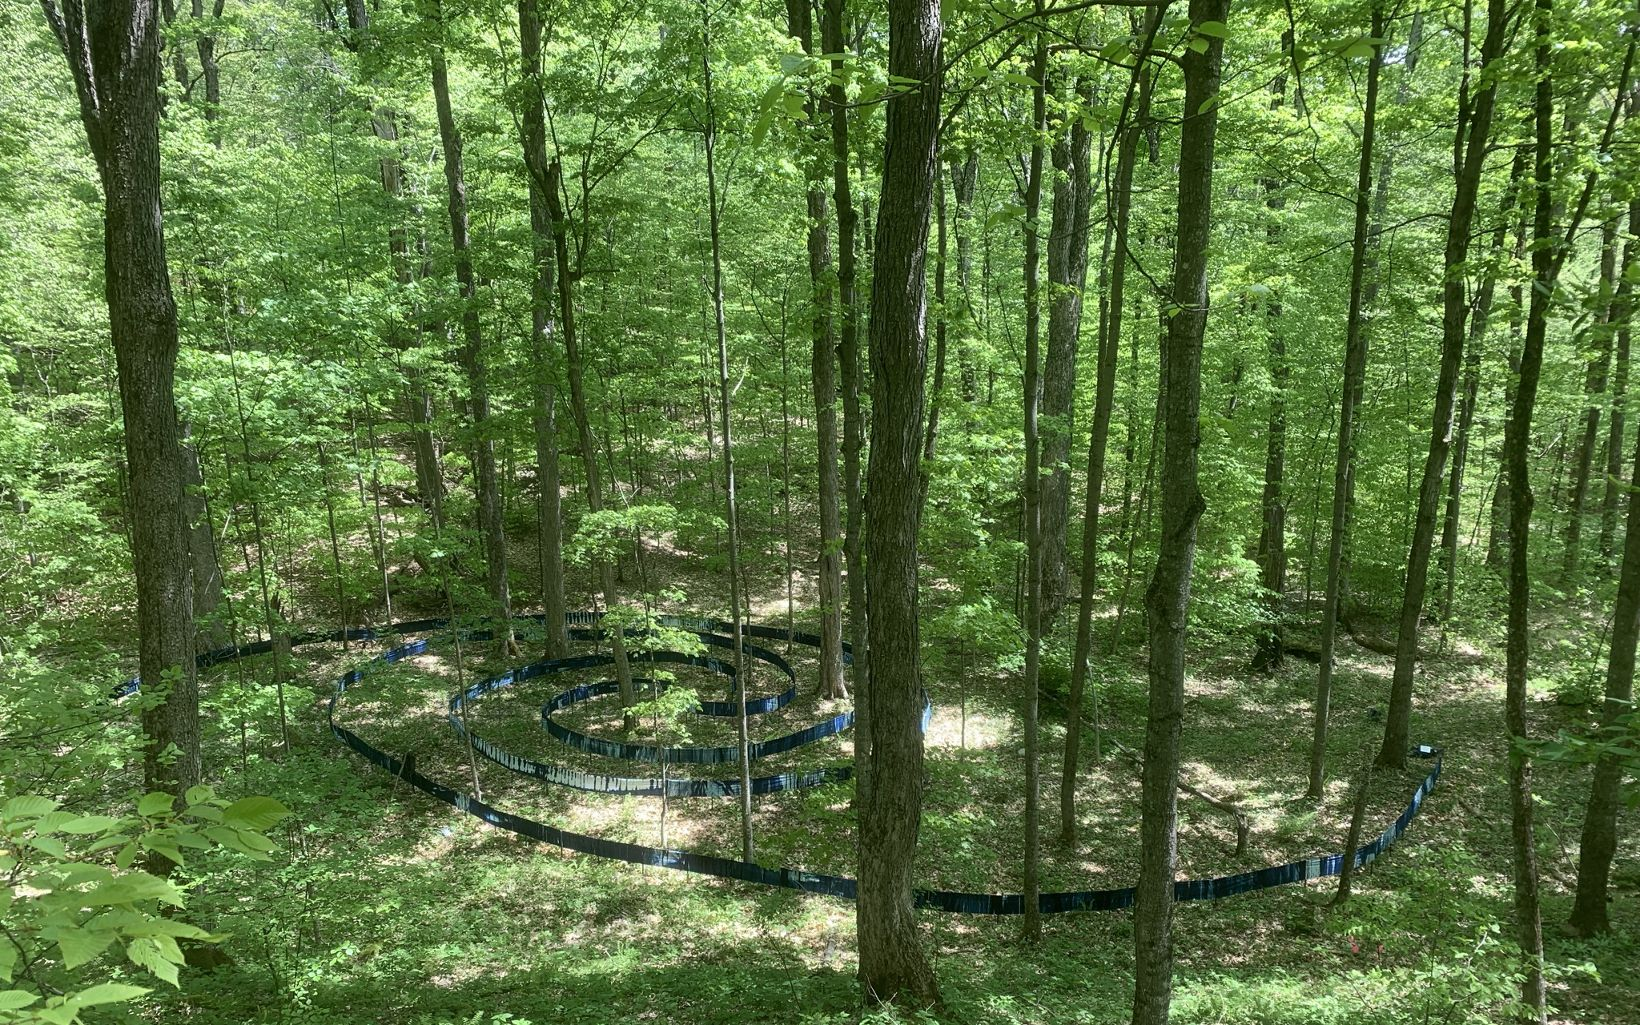 Labyrinth in Equinox Natural Area by Elizabeth Billings